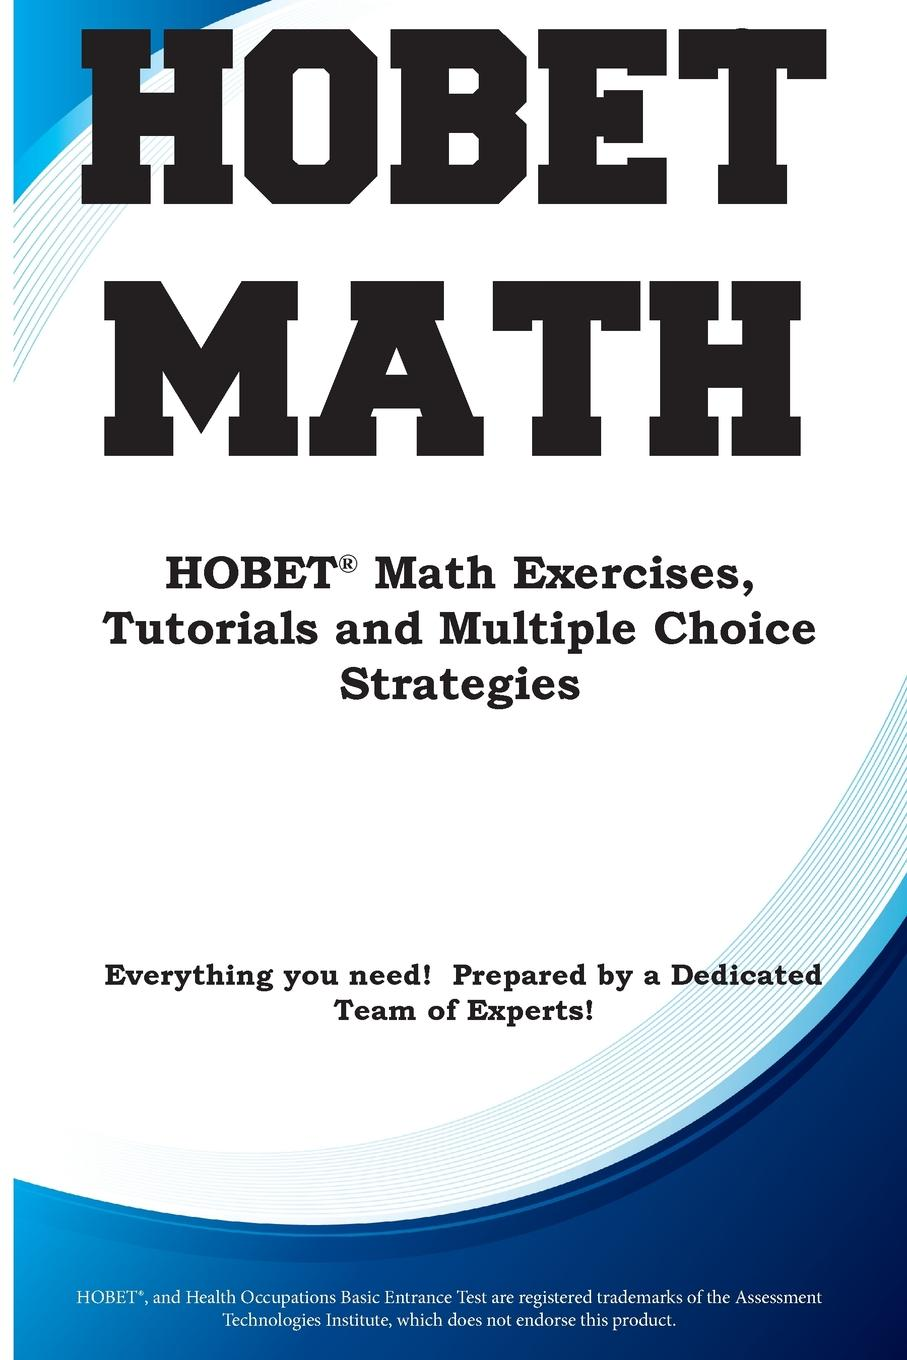 Complete Test Preparation Inc. HOBET Math. HOBET. Math Exercises, Tutorials and Multiple Choice Strategies block tsop28 ucos dedicated ic zy212a burning test socket adapter